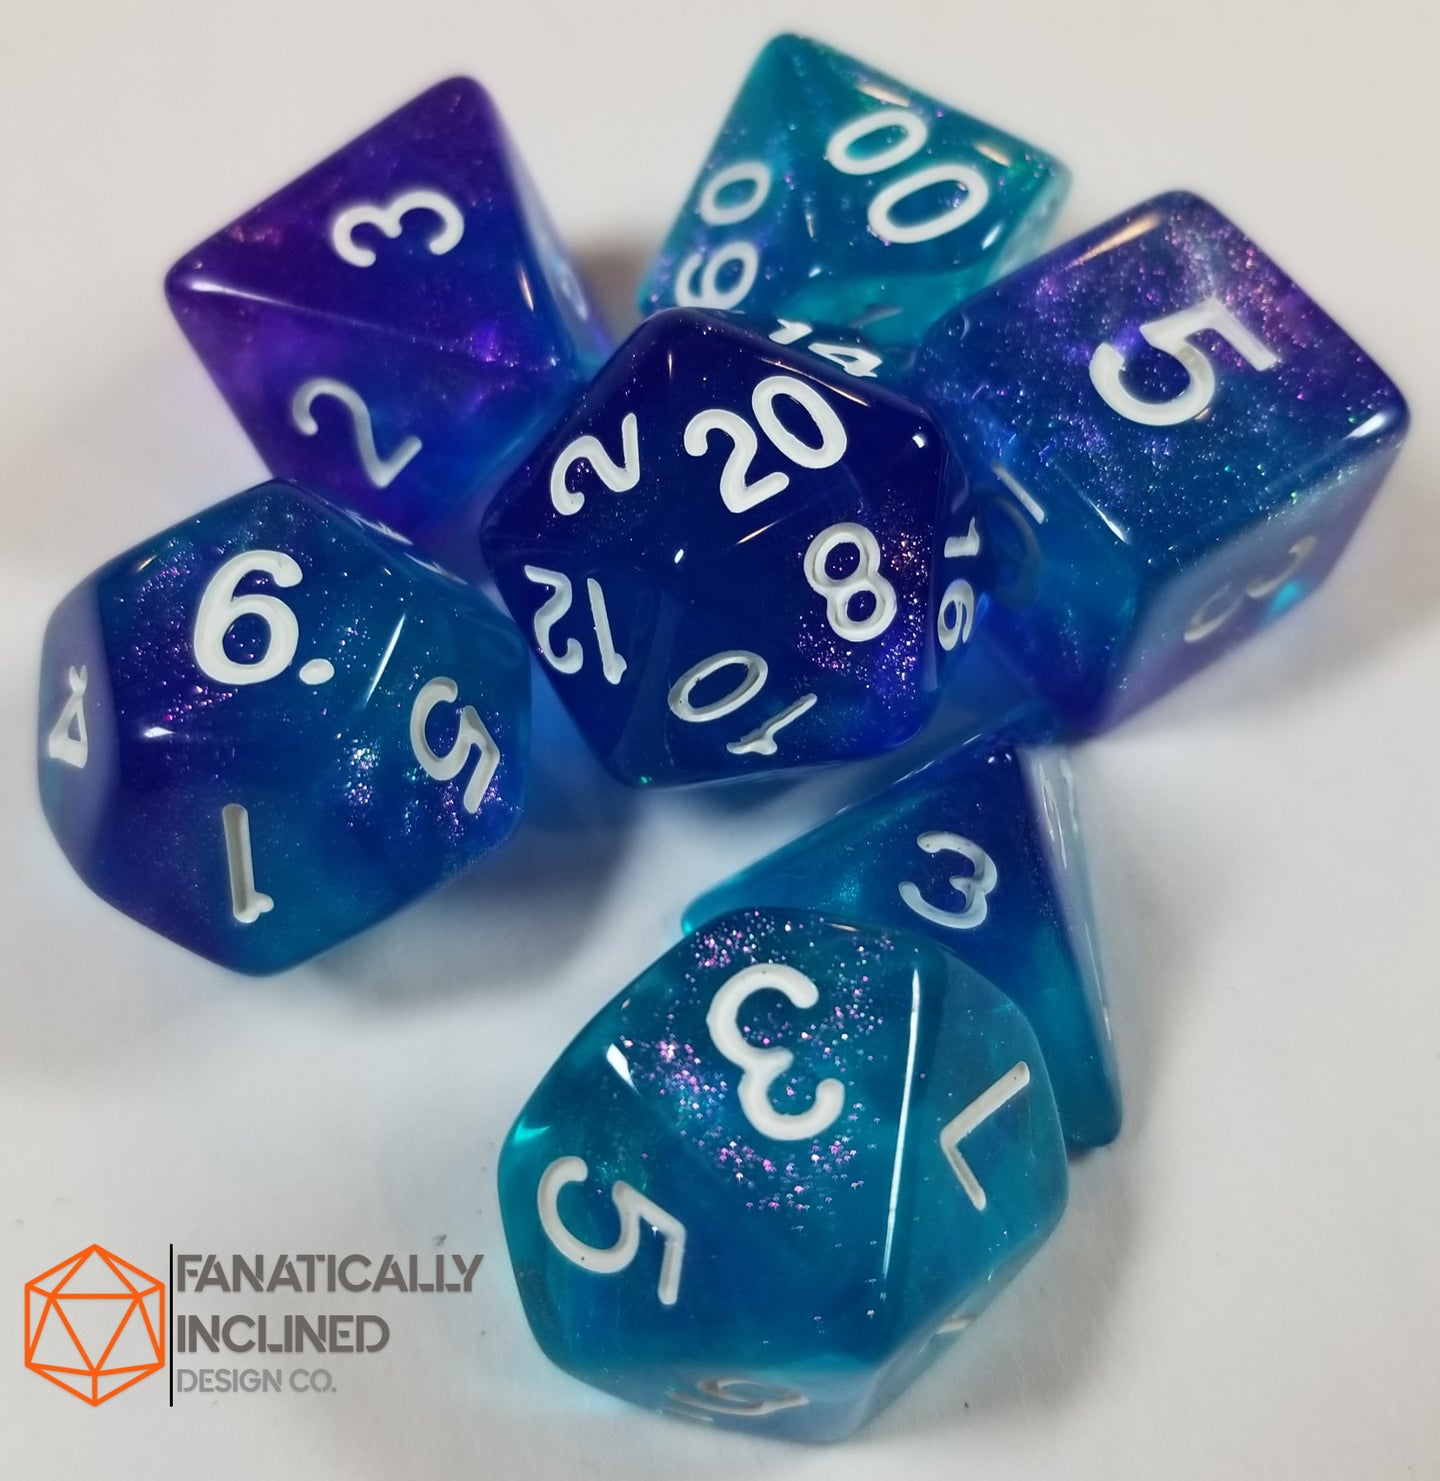 Purple and Blue Glitter Galaxy 7pc Dice Set